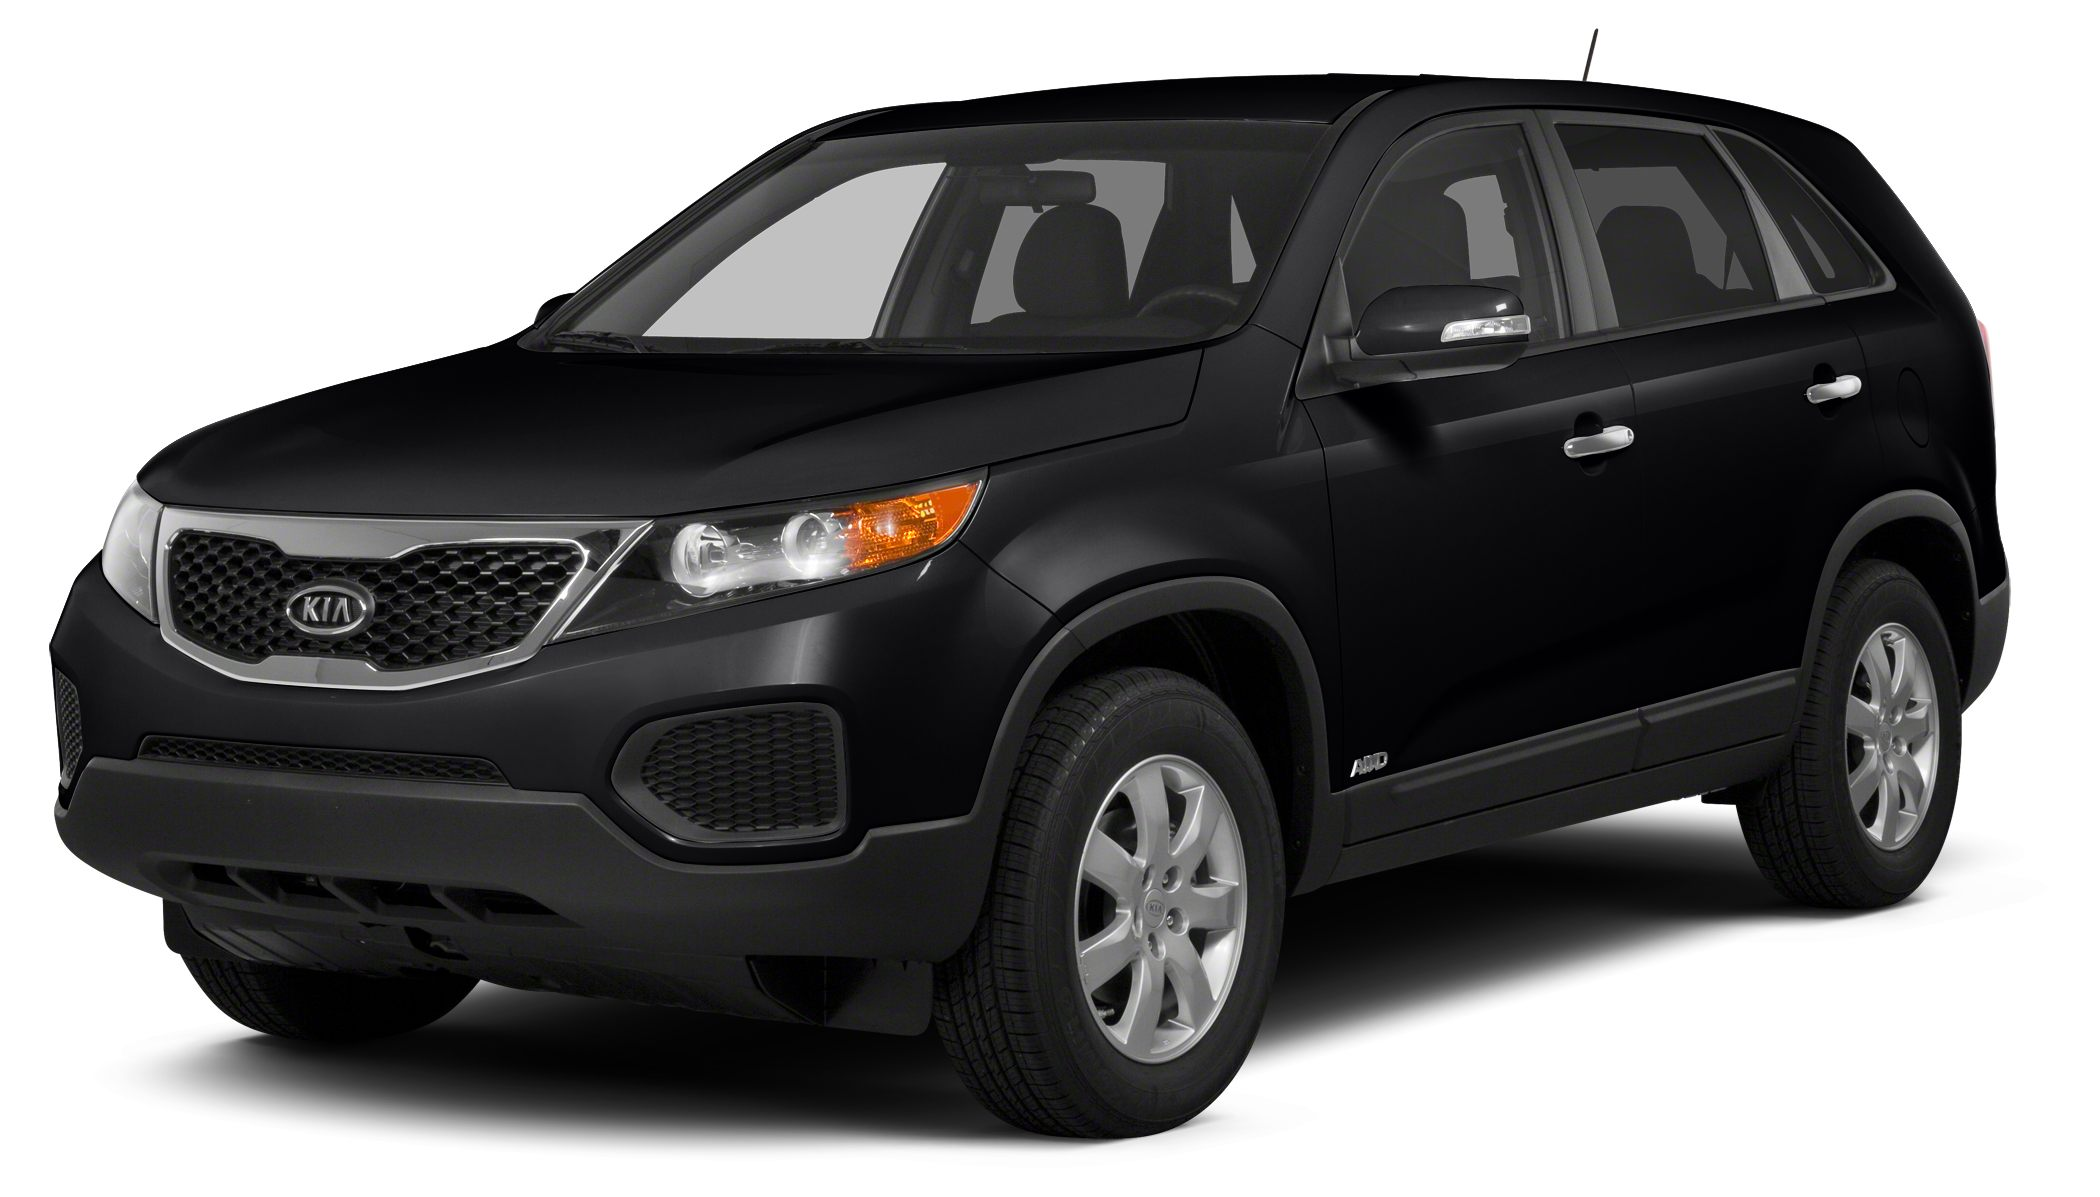 2012 Kia Sorento LX 4D Sport Utility and 6-Speed Automatic with Sportmatic Power To Surprise Don